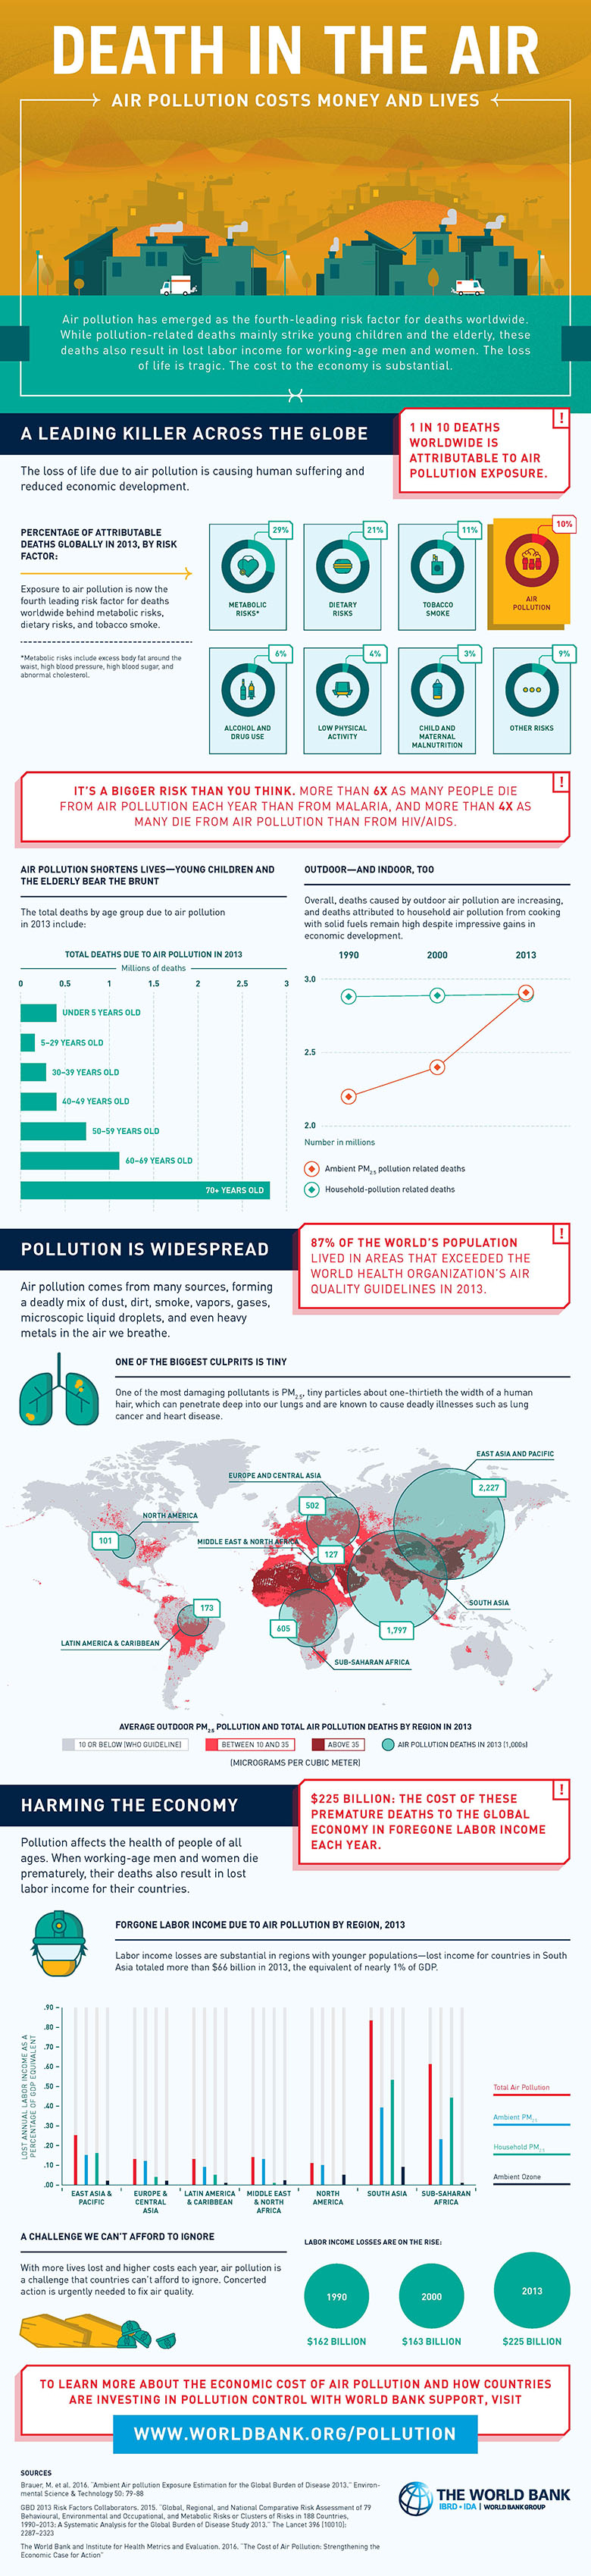 Air pollution costs money and lives, World Bank and the Institute for Health Metrics and Evaluation